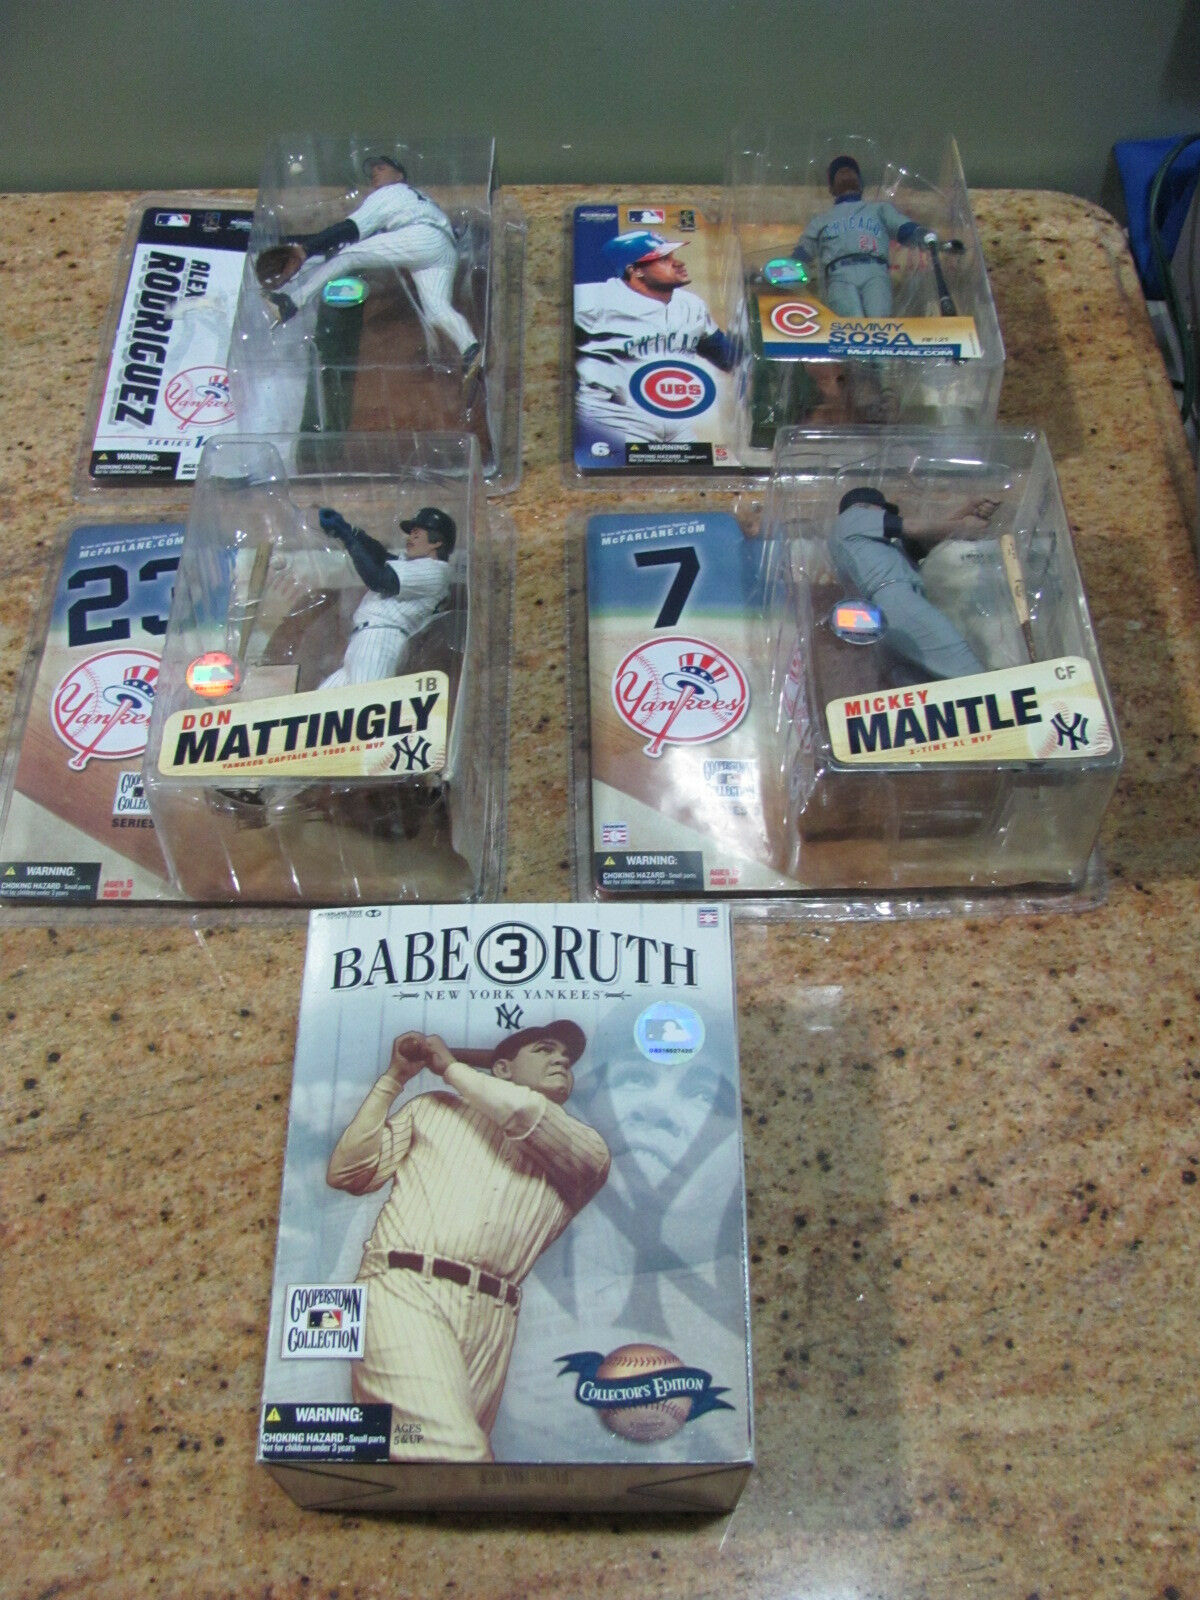 Lot of 4 McFarland Yankee Figures & Babe Ruth Cooperstown Collection, USC 555